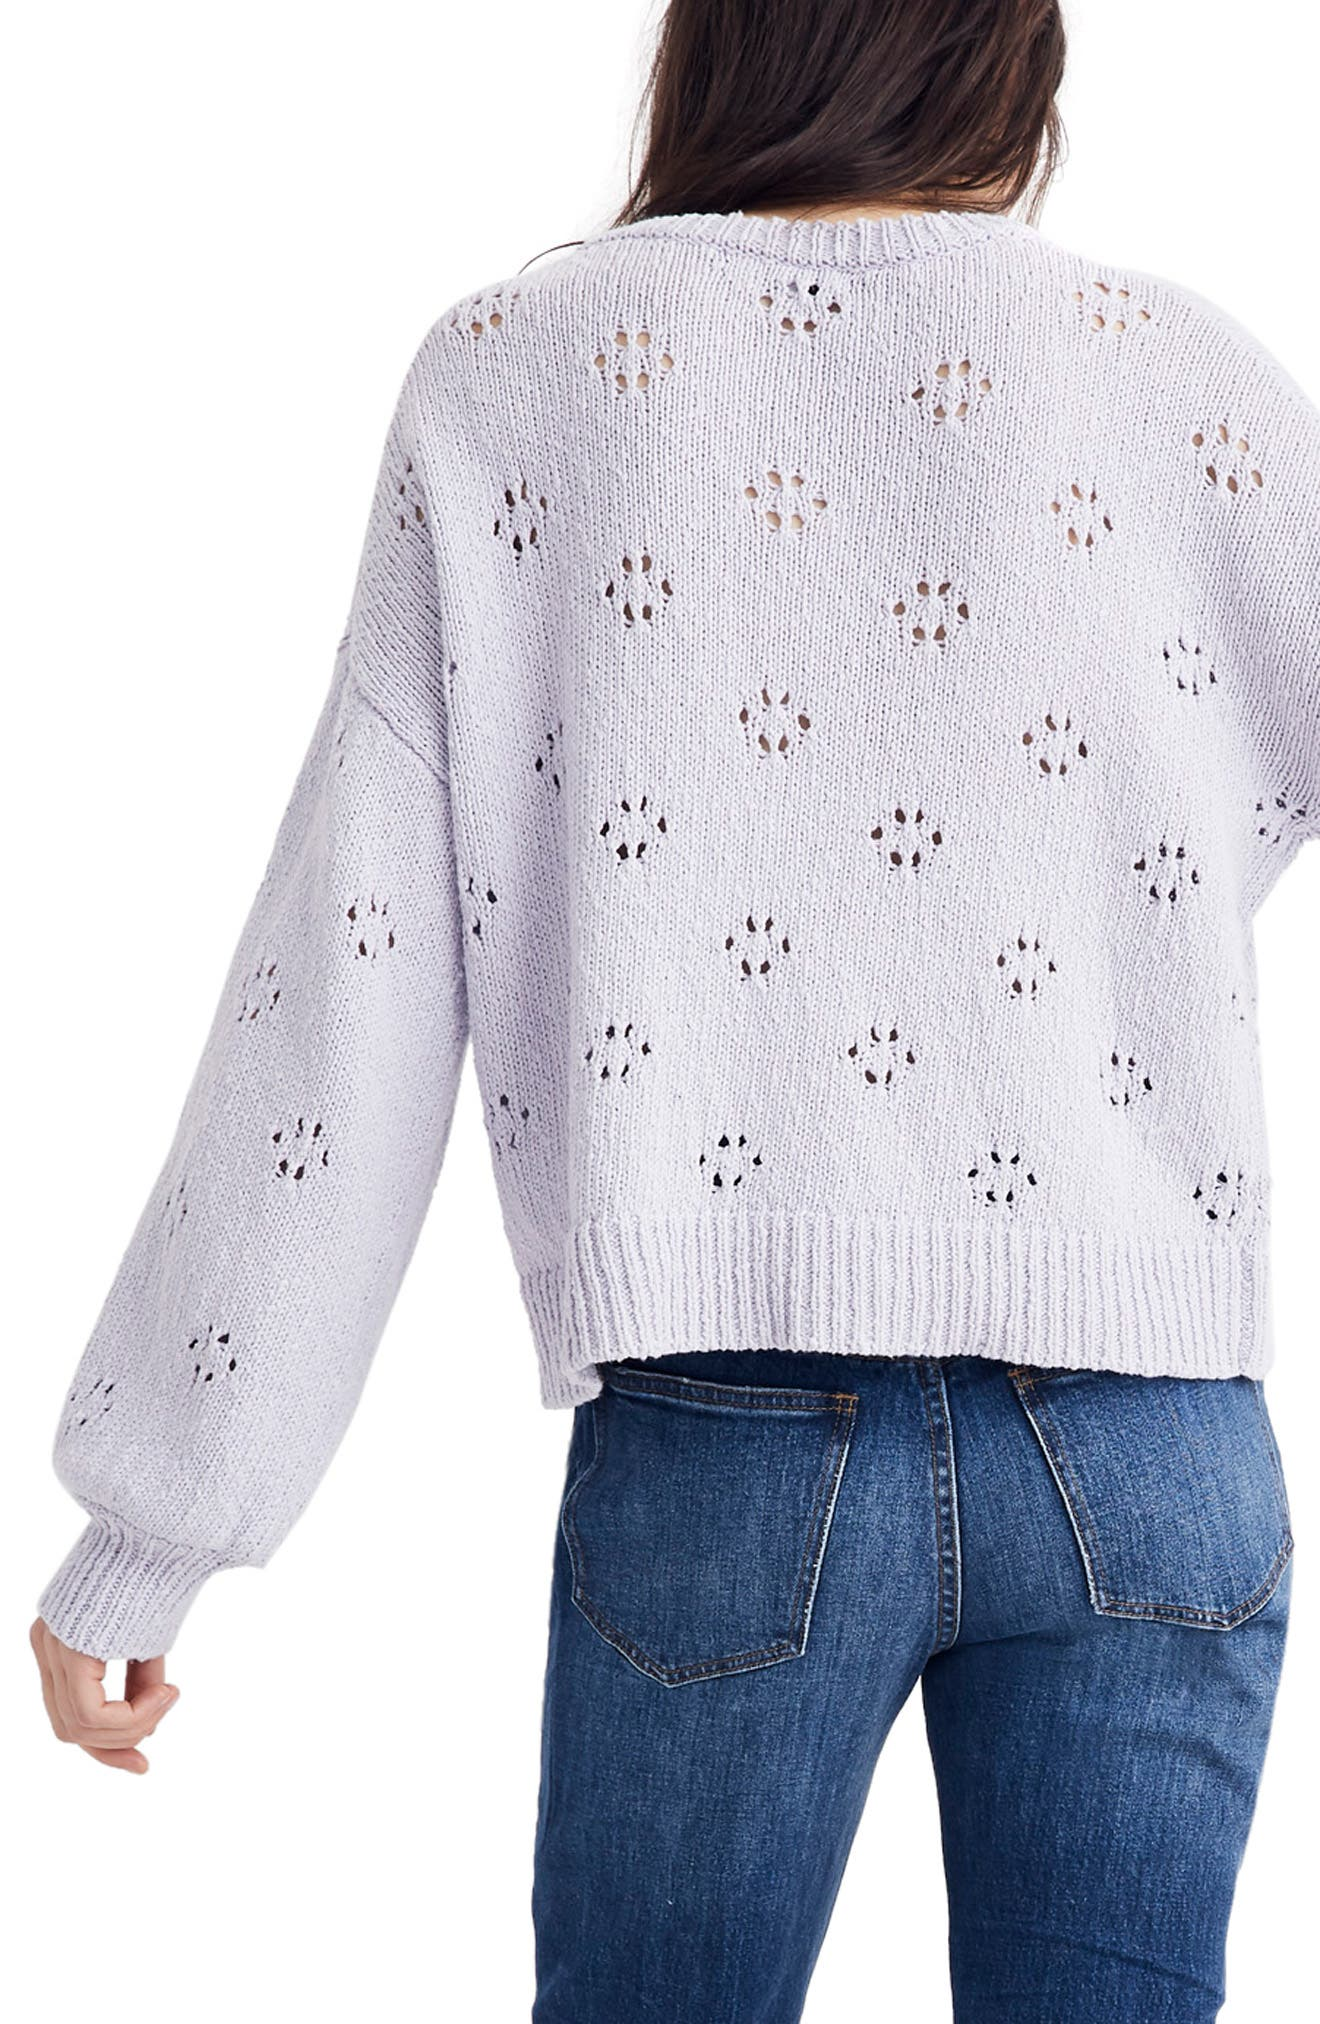 MADEWELL, Floral Pointelle Pullover Sweater, Alternate thumbnail 3, color, SUNDRENCHED LILAC